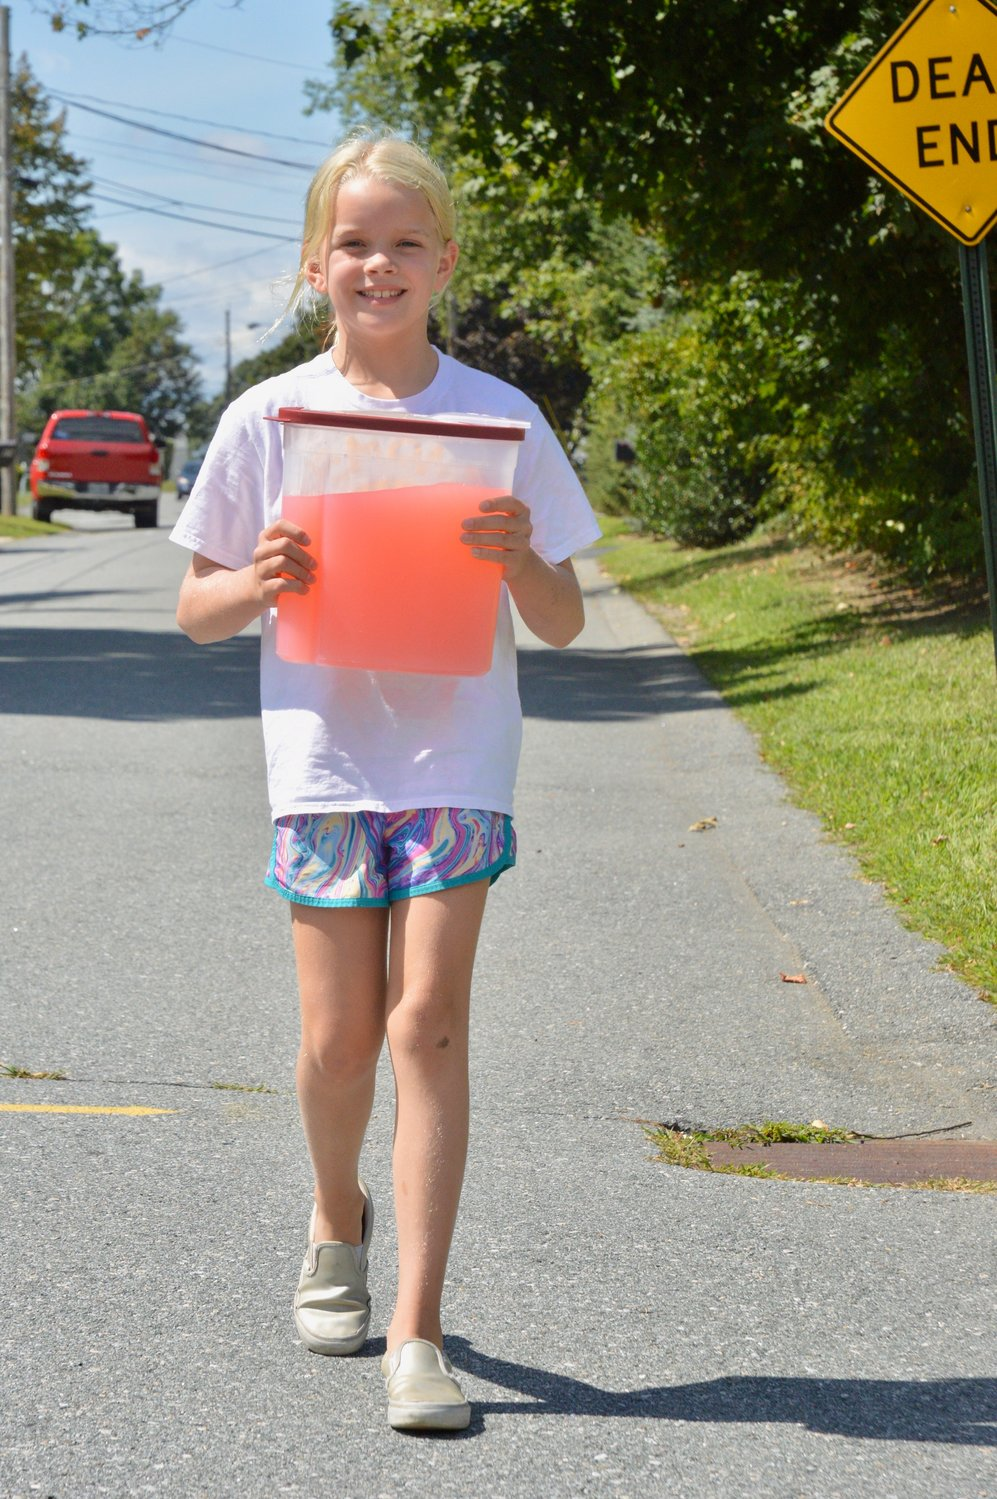 Gwen Schaub carries a container full of pink lemonade from her Windward Drive home to the lemonade stand at the corner of Linda Avenue.